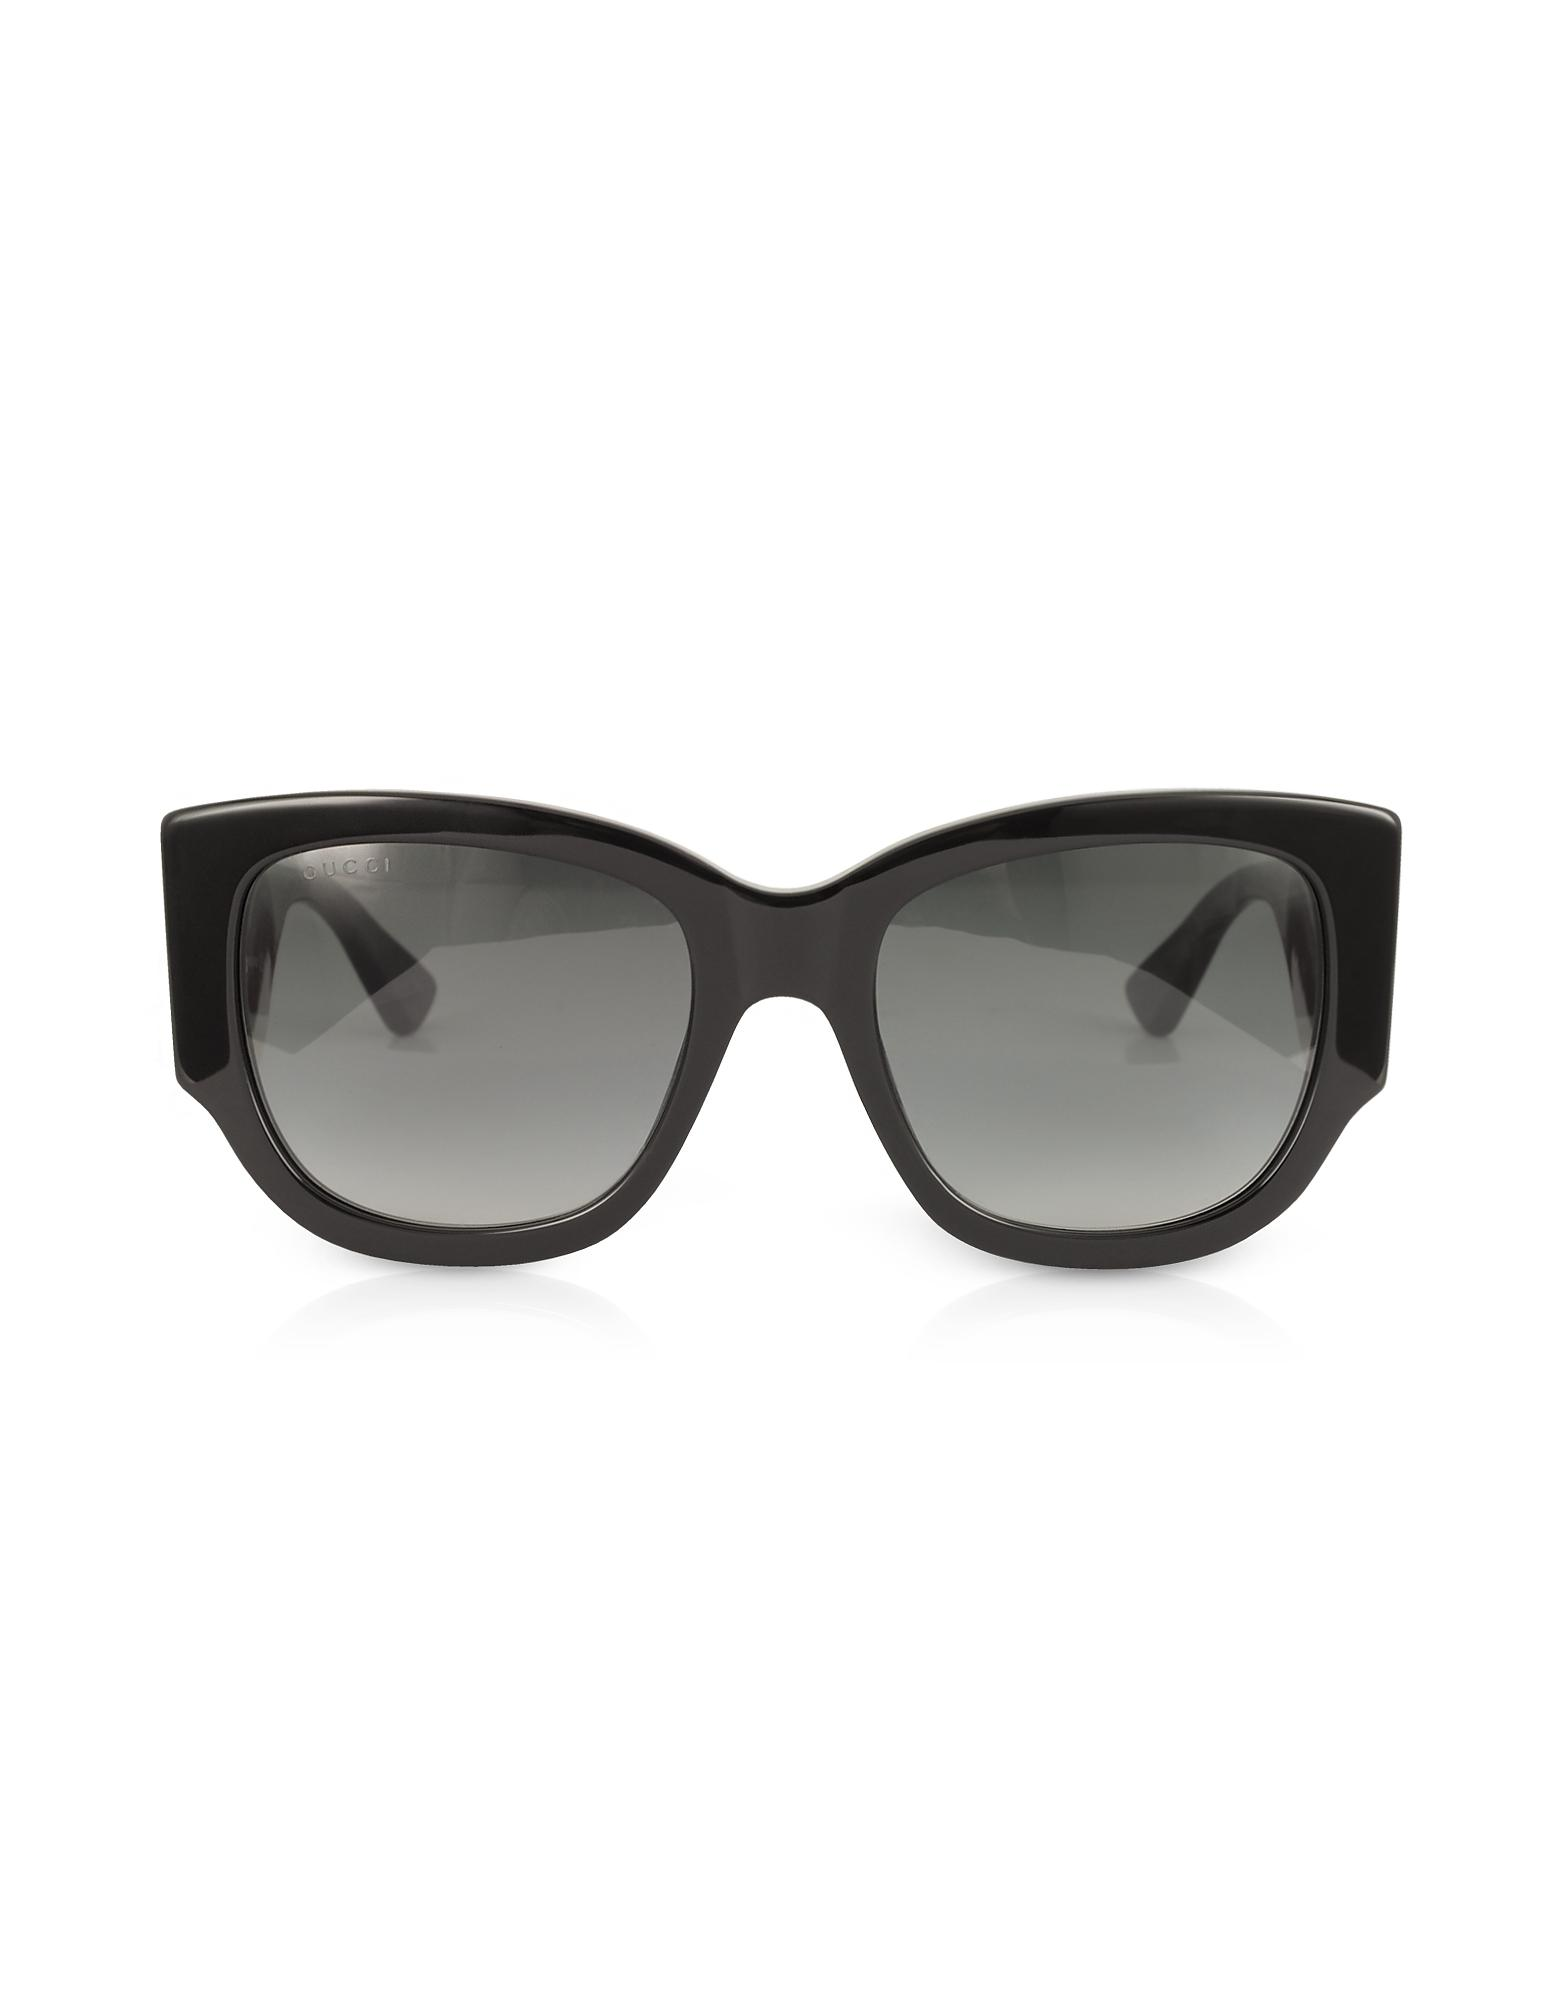 542cbefef7 Gucci - GG0276S Black Oversize Cat Eye Acetate Sunglasses W sylvie Web  Temples - Lyst. View fullscreen